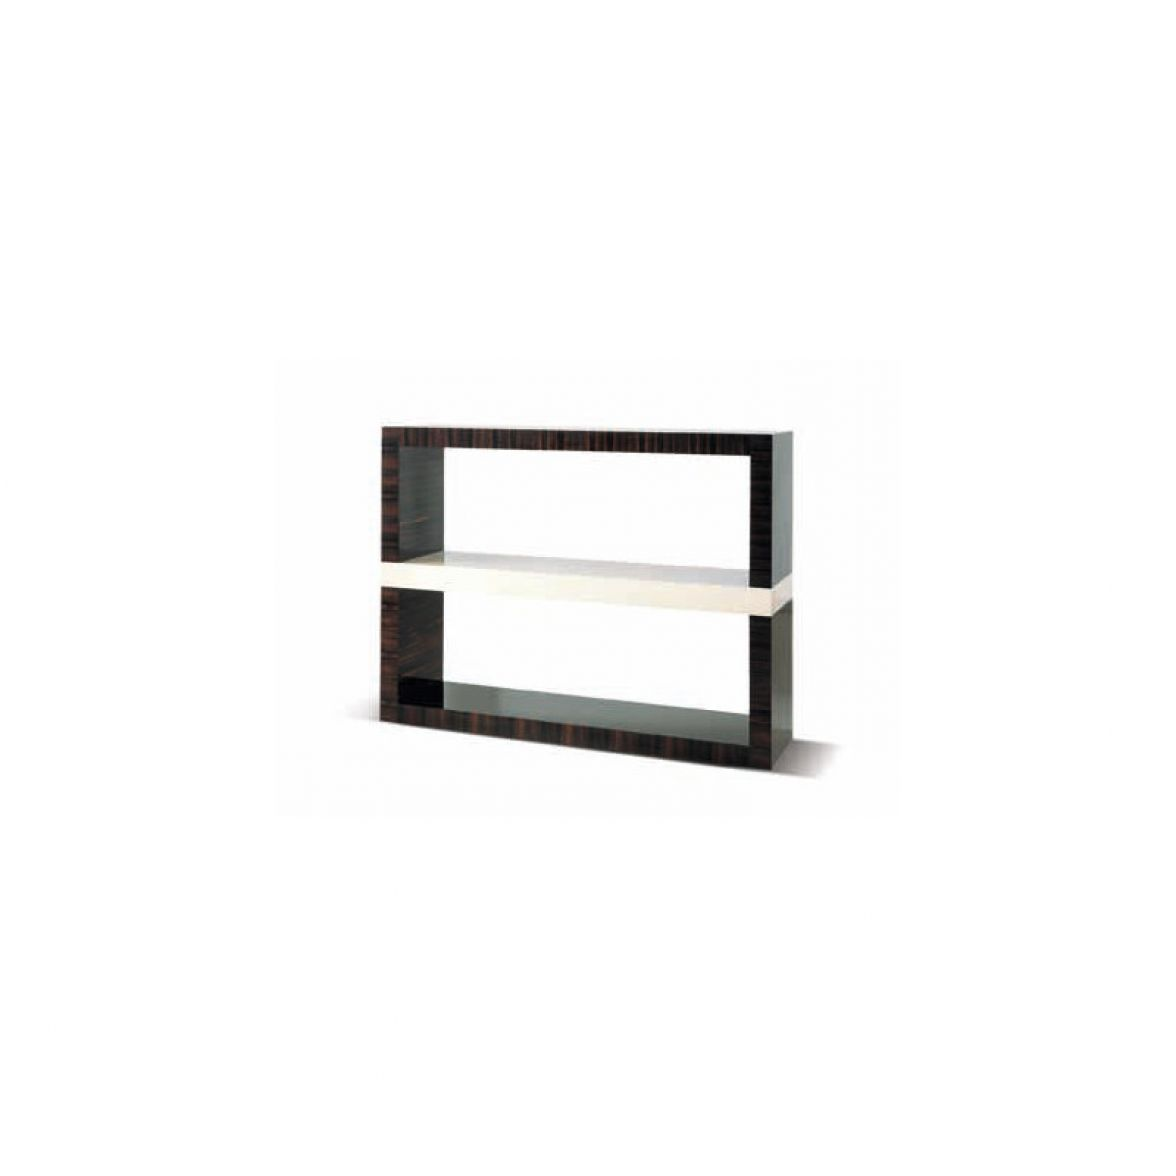 Gallery Etagere cabinet